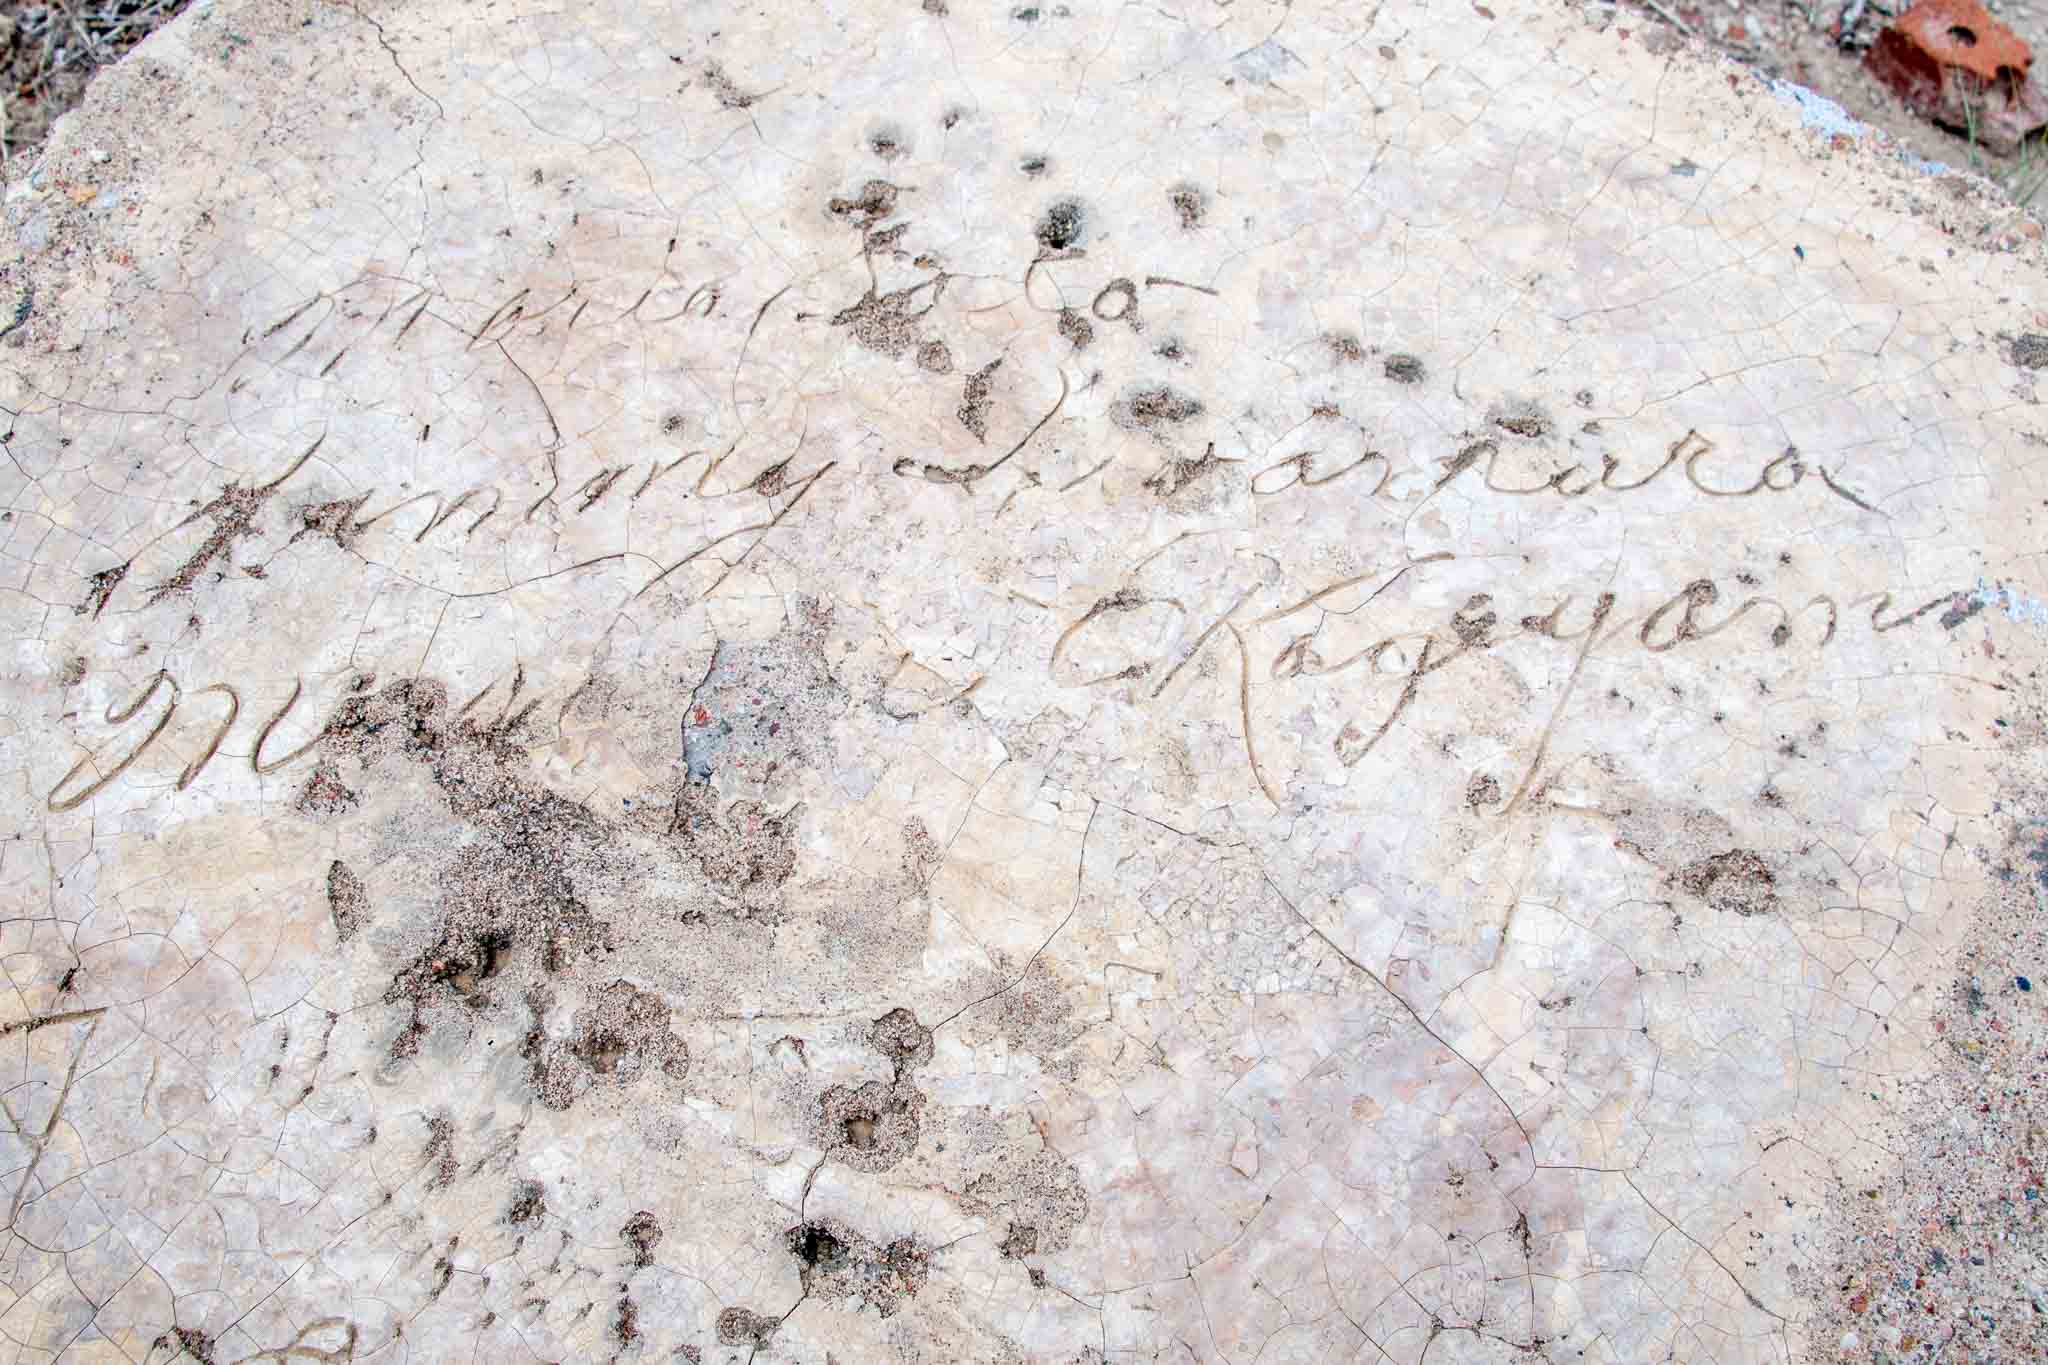 Names of prisoners signed into concrete at Camp Amache